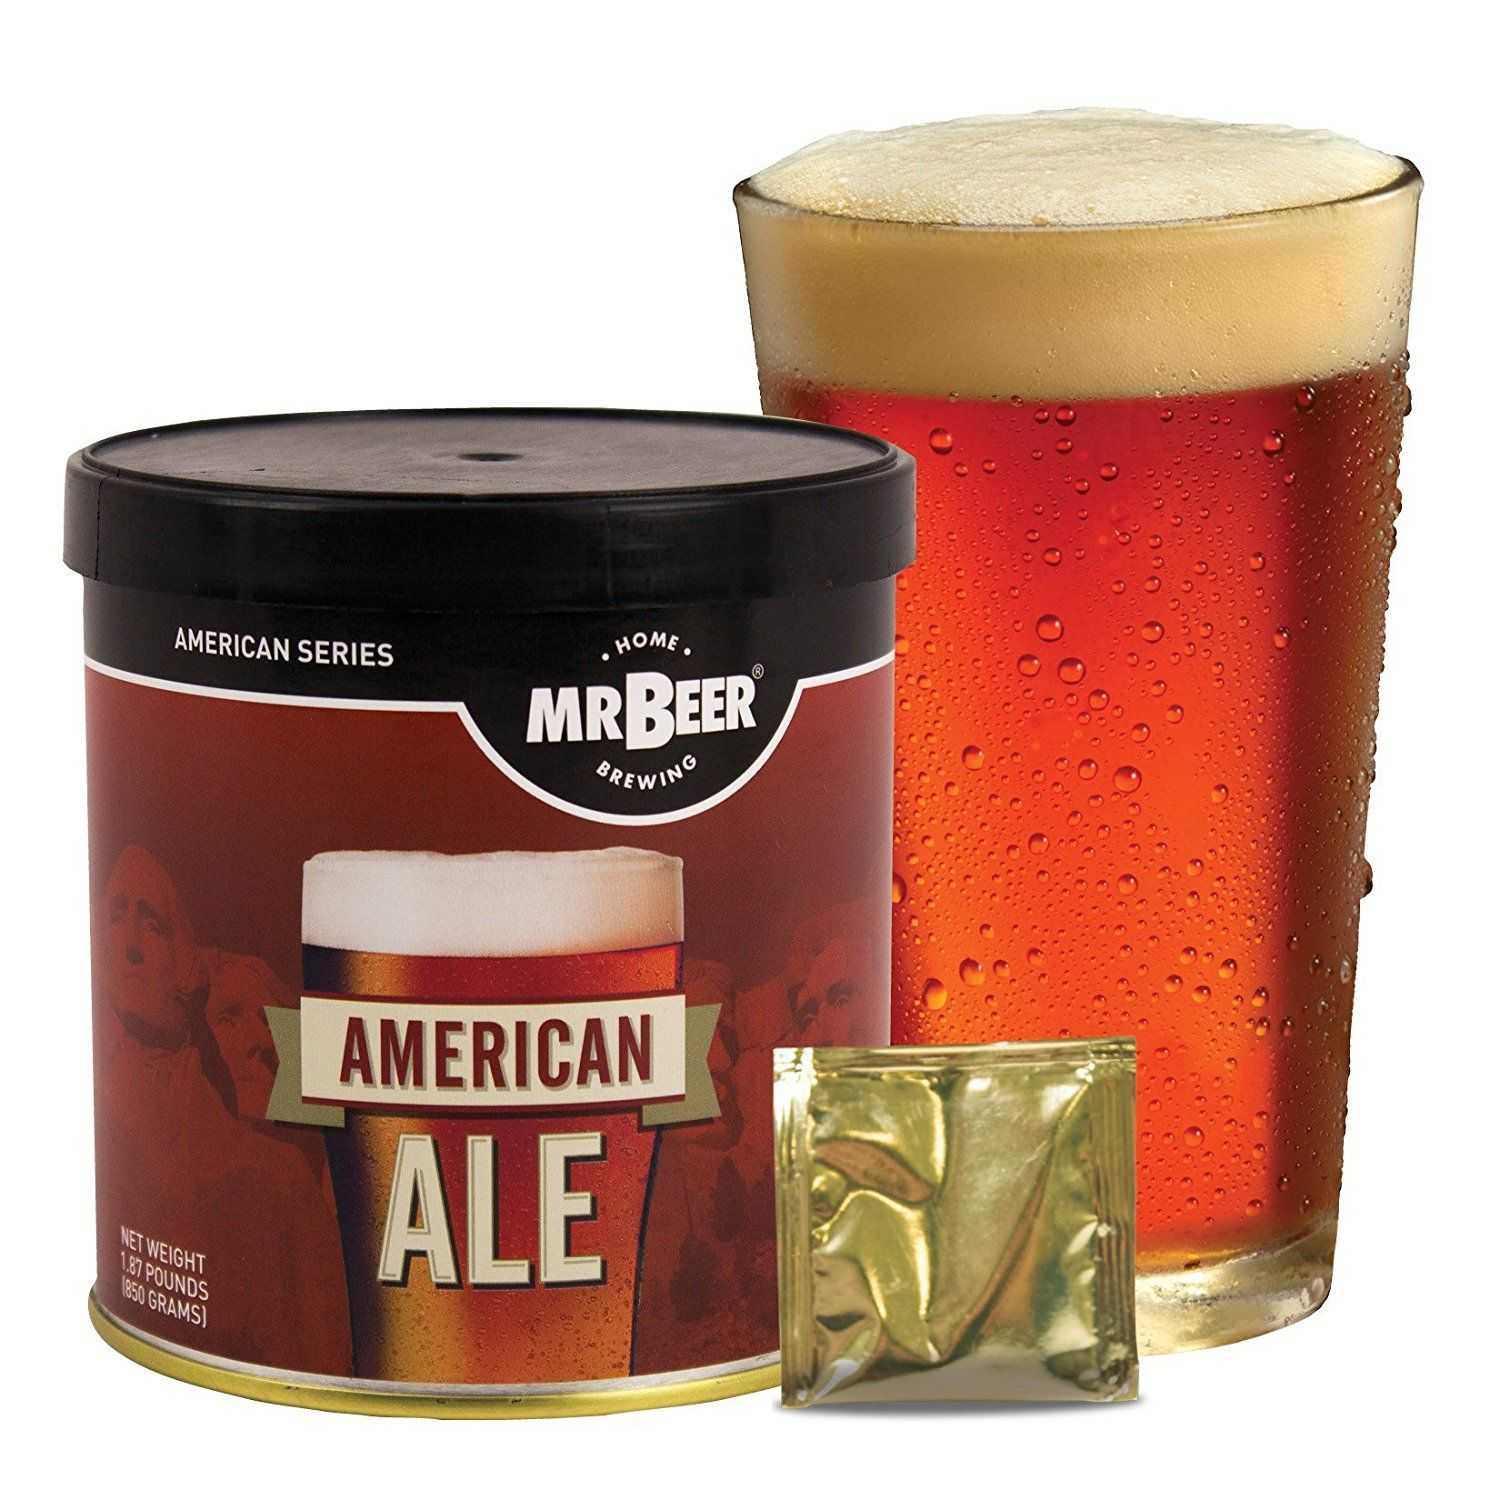 Mr beer american ale homebrewing craft beer refill kit you mr beer american ale homebrewing craft beer refill kit you can get solutioingenieria Image collections